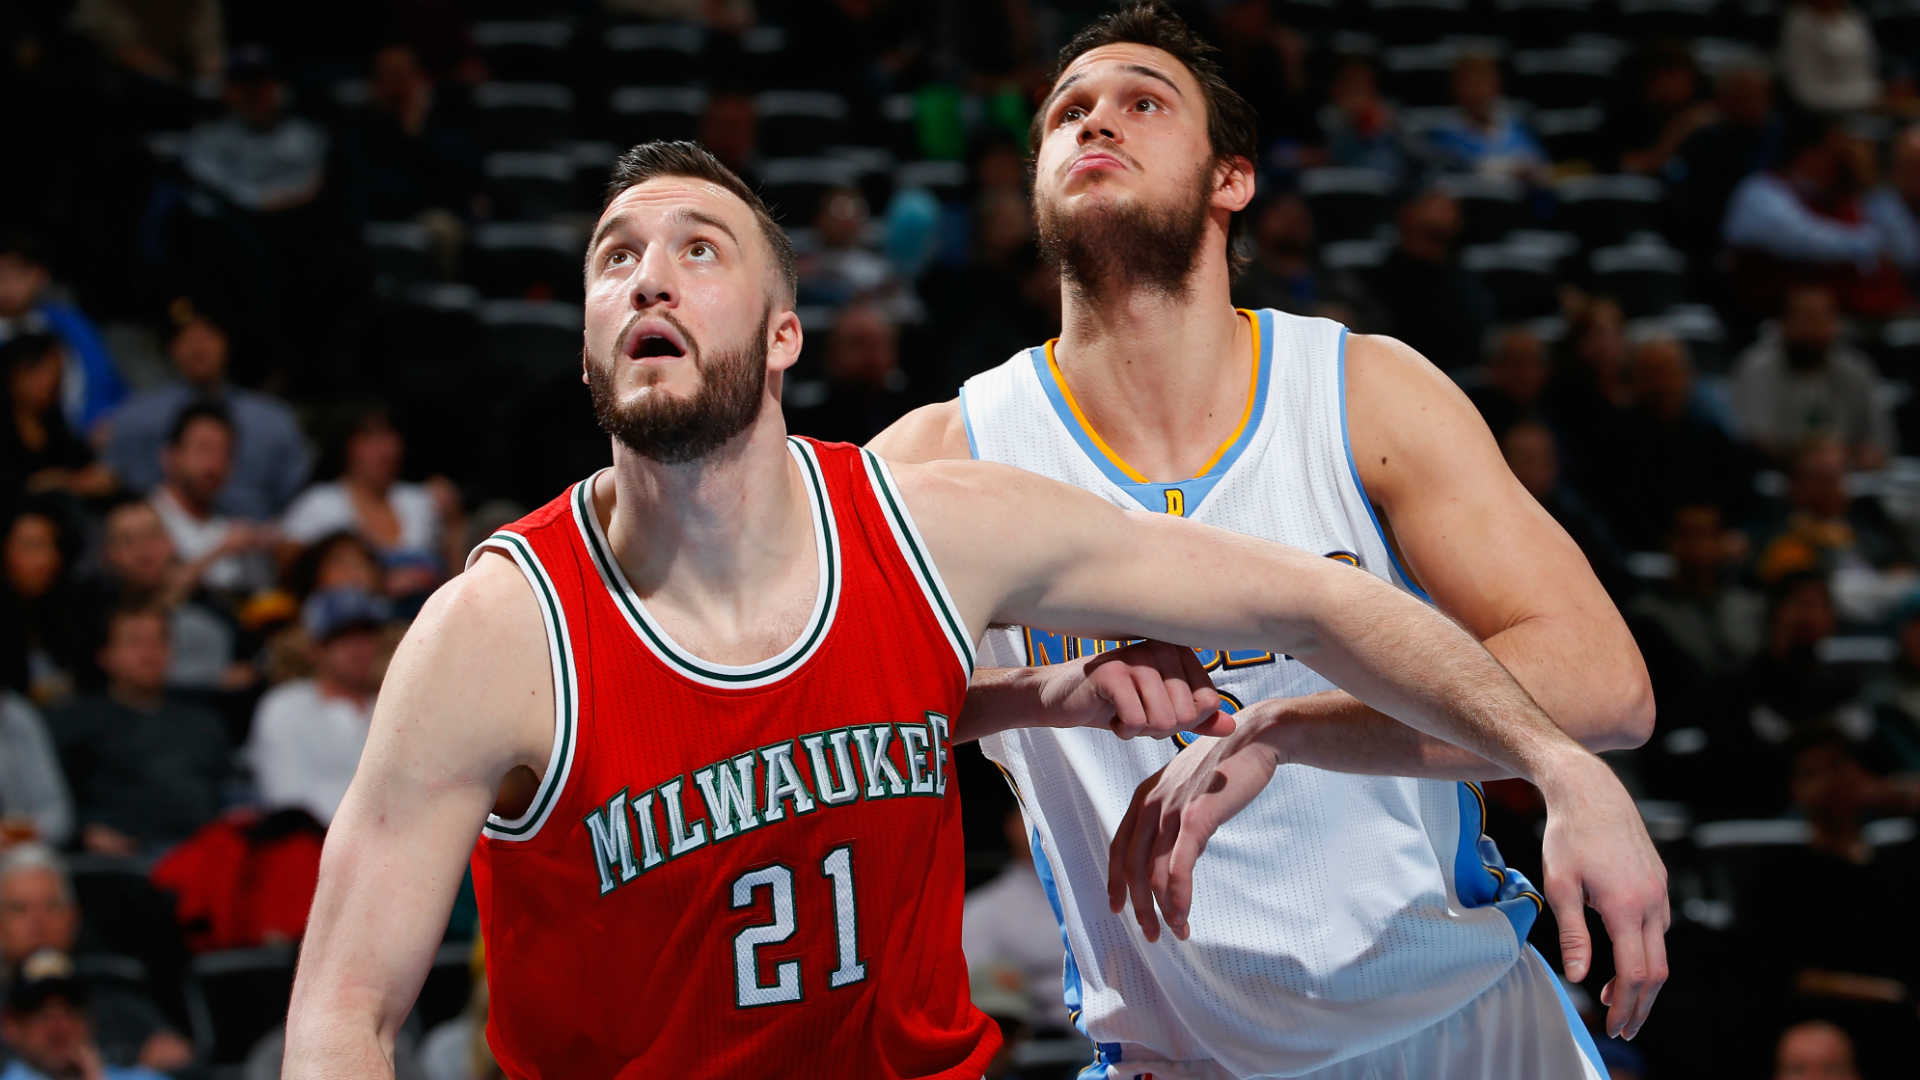 Miles-plumlee-left-and-danilo-gallinari_we8o8qt8copm1tjdl6do2qfar